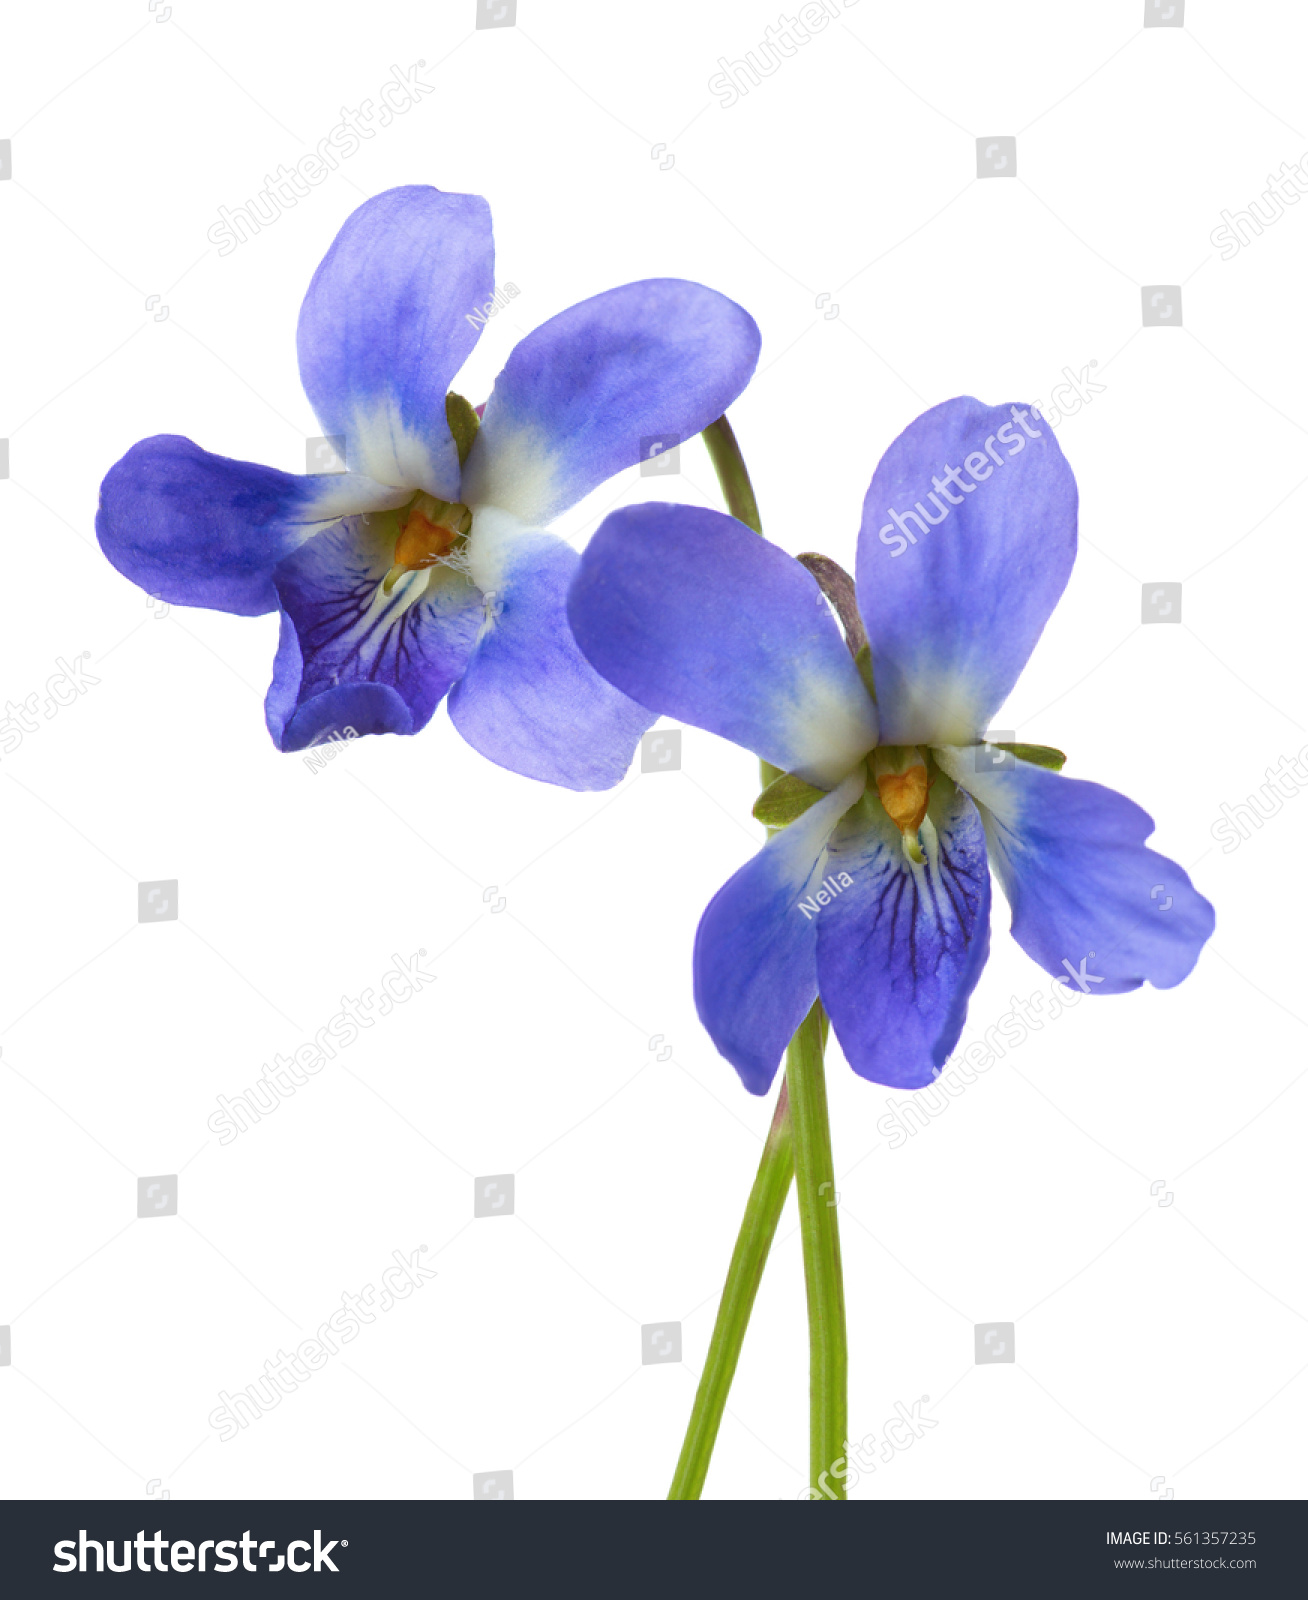 Two Early Spring Flowers Viola Odorata Isolated On White